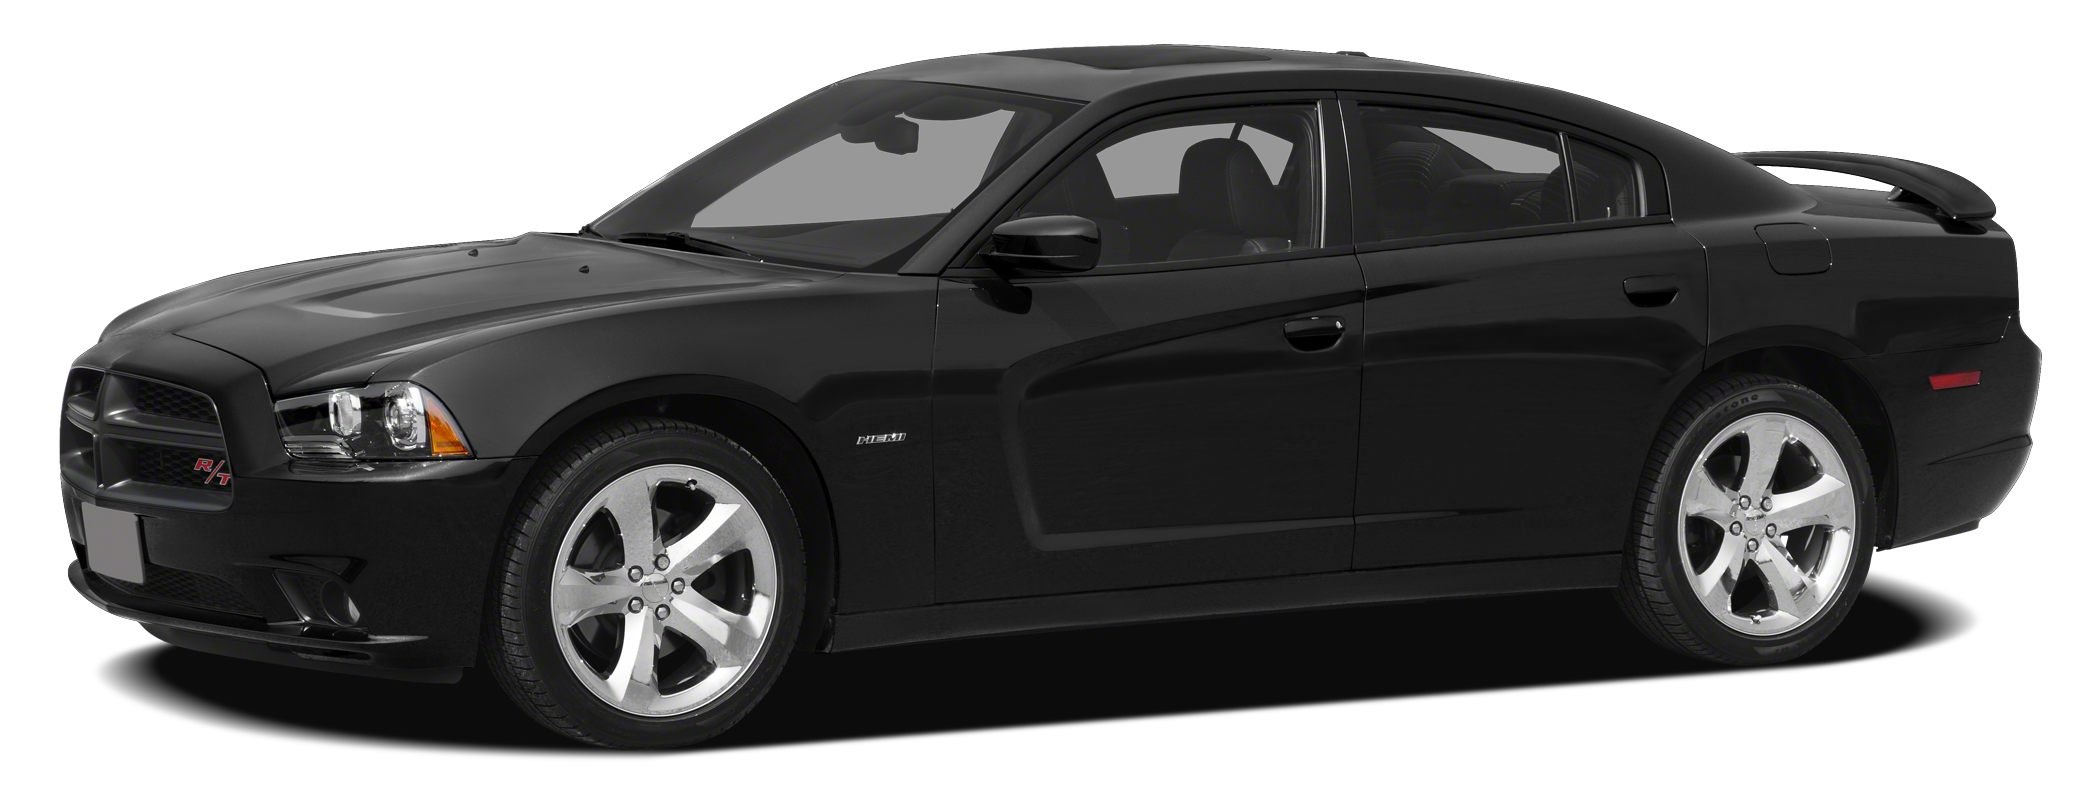 2012 Dodge Charger RT DISCLAIMER We are excited to offer this vehicle to you but it is currently